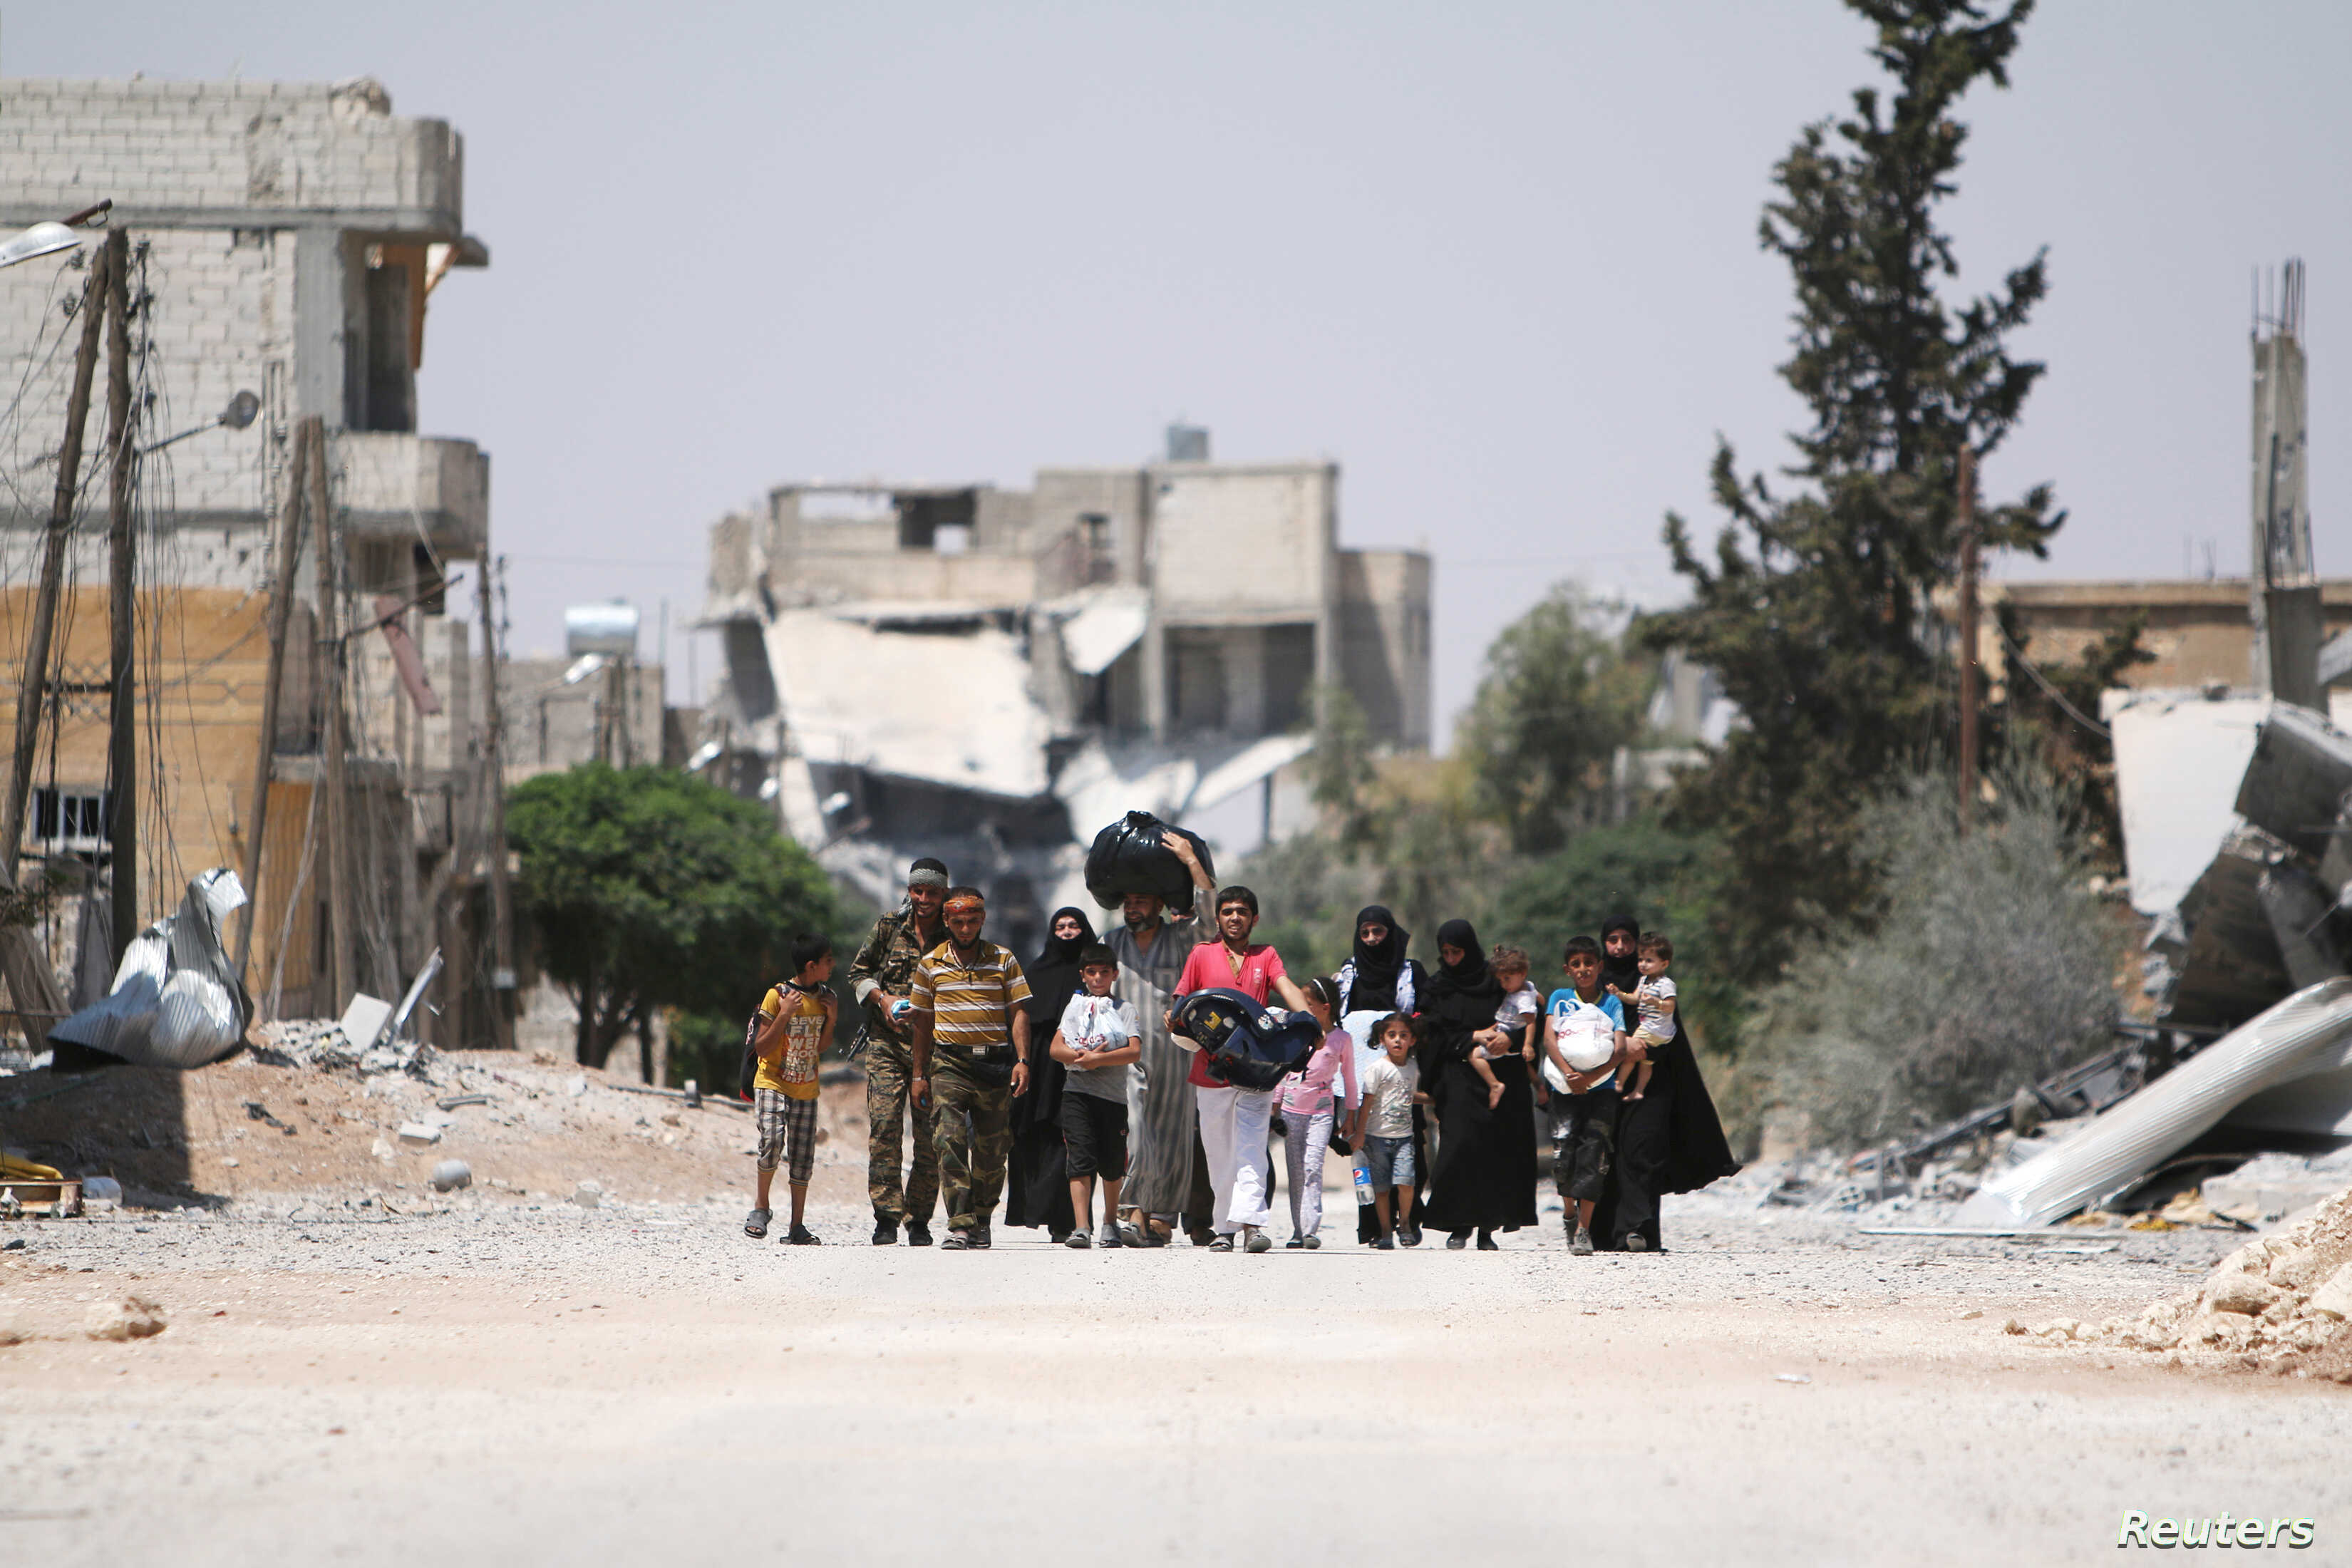 Syria Democratic Forces (SDF) fighters walk with people that fled their homes due to clashes between Islamic State fighters and Syria Democratic Forces (SDF) towards safer parts of Manbij, in Aleppo Governorate, Syria, August 7, 2016.